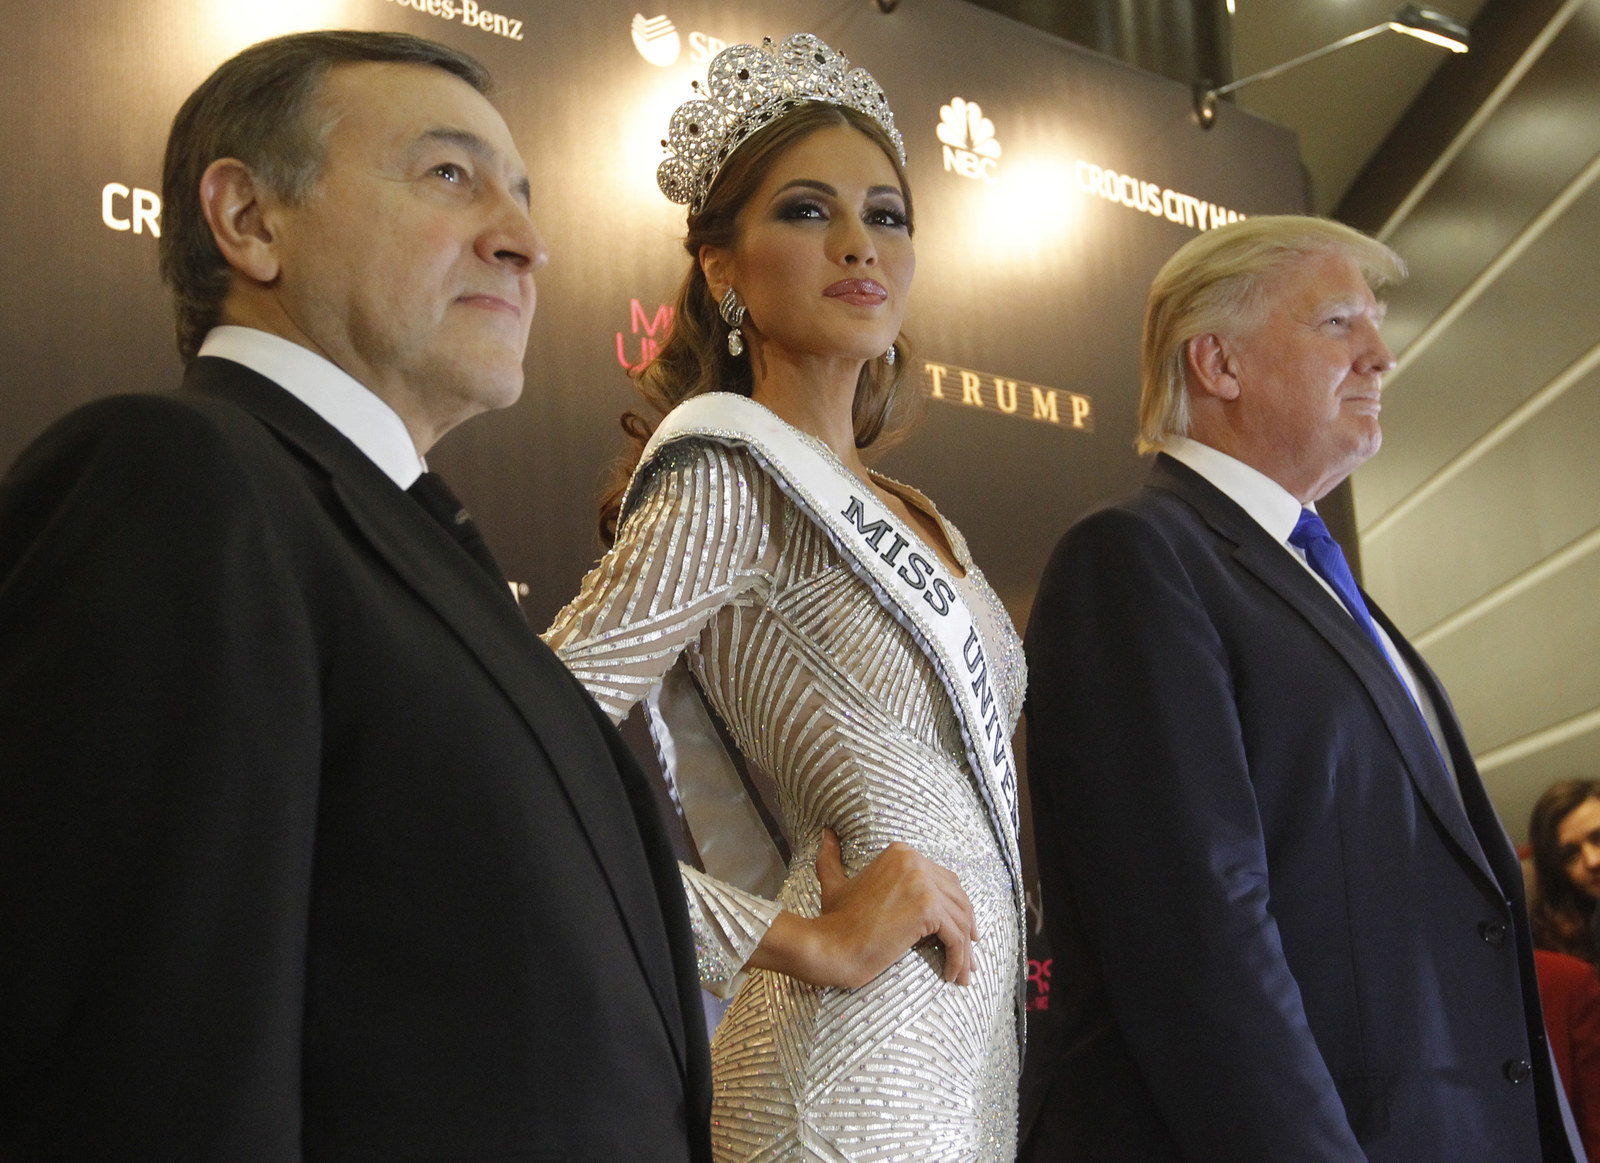 Trump's Miss Universe Partner In Russia Had An Early Brush With US Tax Authorities